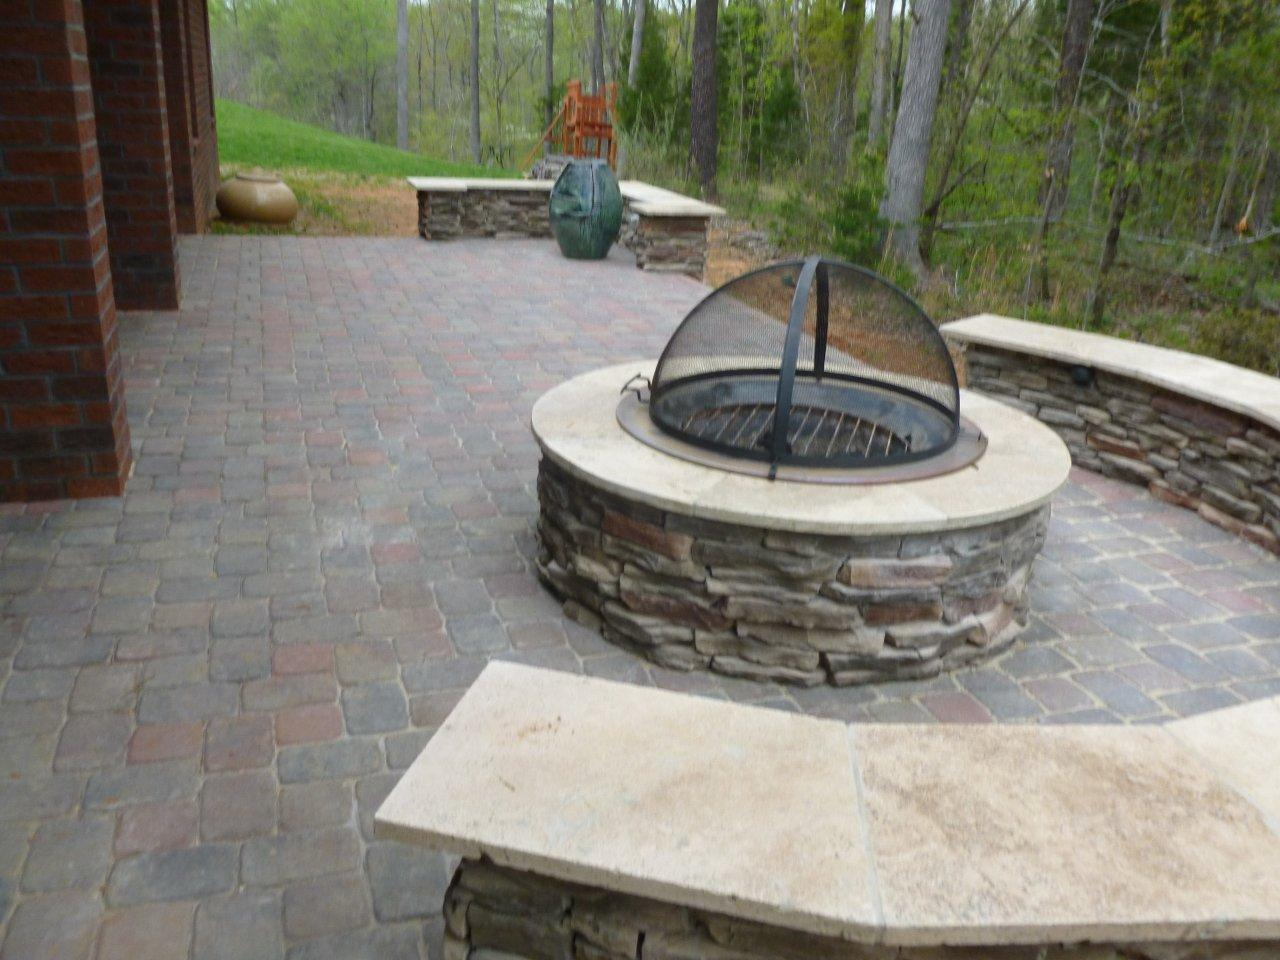 Safety is an important and under valued consideration when designing outdoor fireplaces and fire pits. At Archadeck of Charlotte